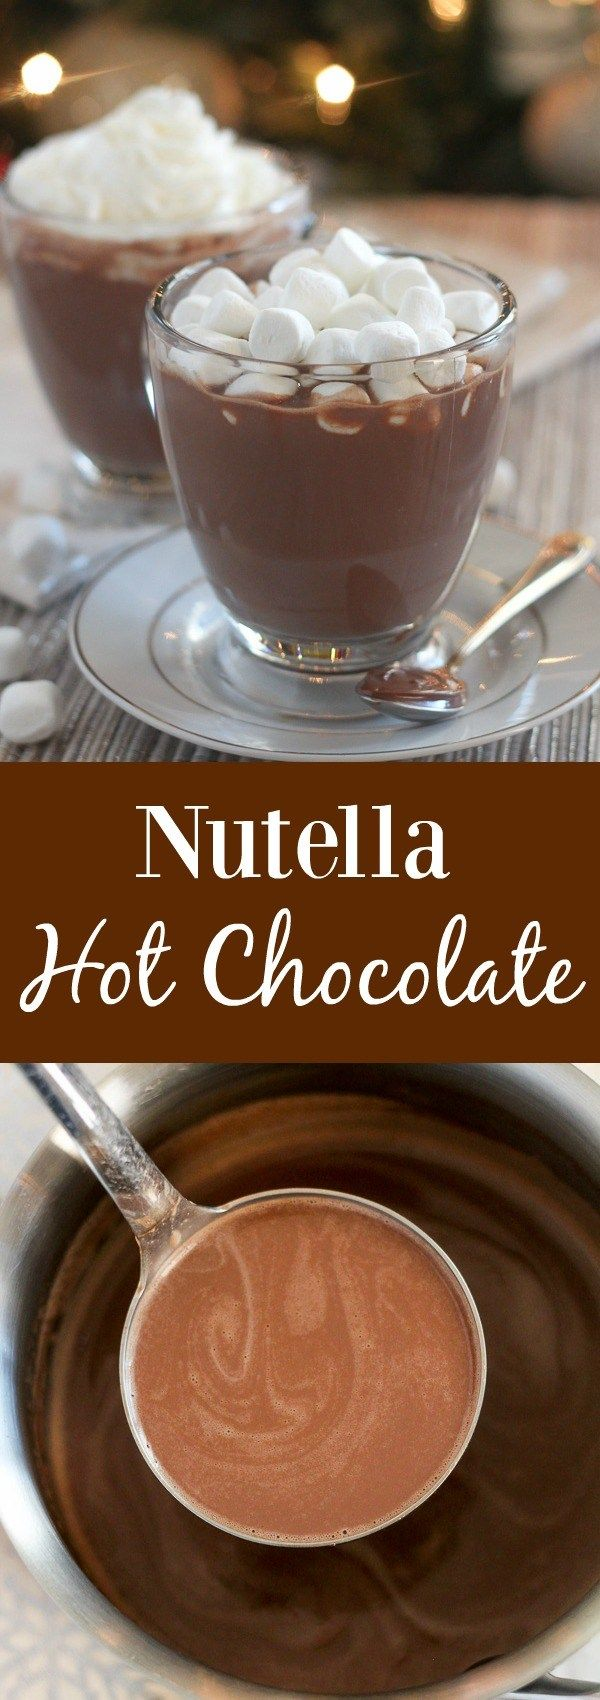 Nutella Hot Chocolate (Chocolate Desserts Nutella) | Lyoness | Shop ingredients now: https://www.lyoness.com/branche/grocery